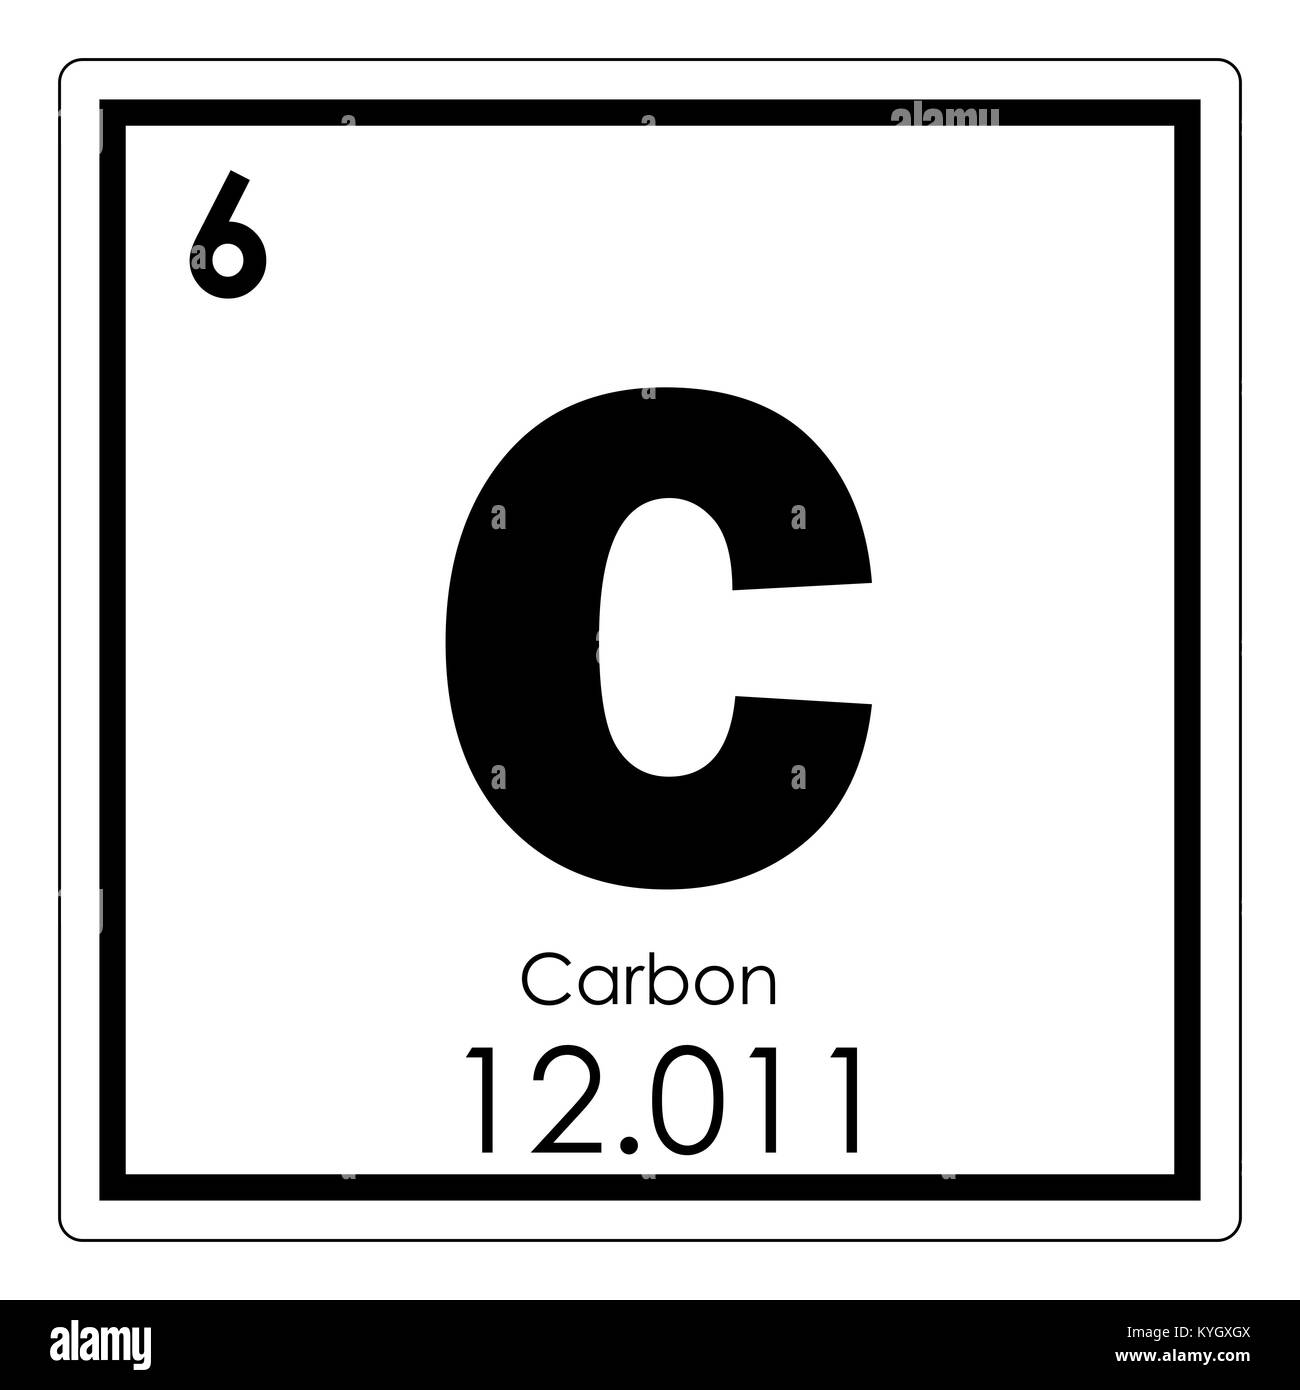 Carbon chemical element periodic table science symbol stock photo carbon chemical element periodic table science symbol urtaz Gallery